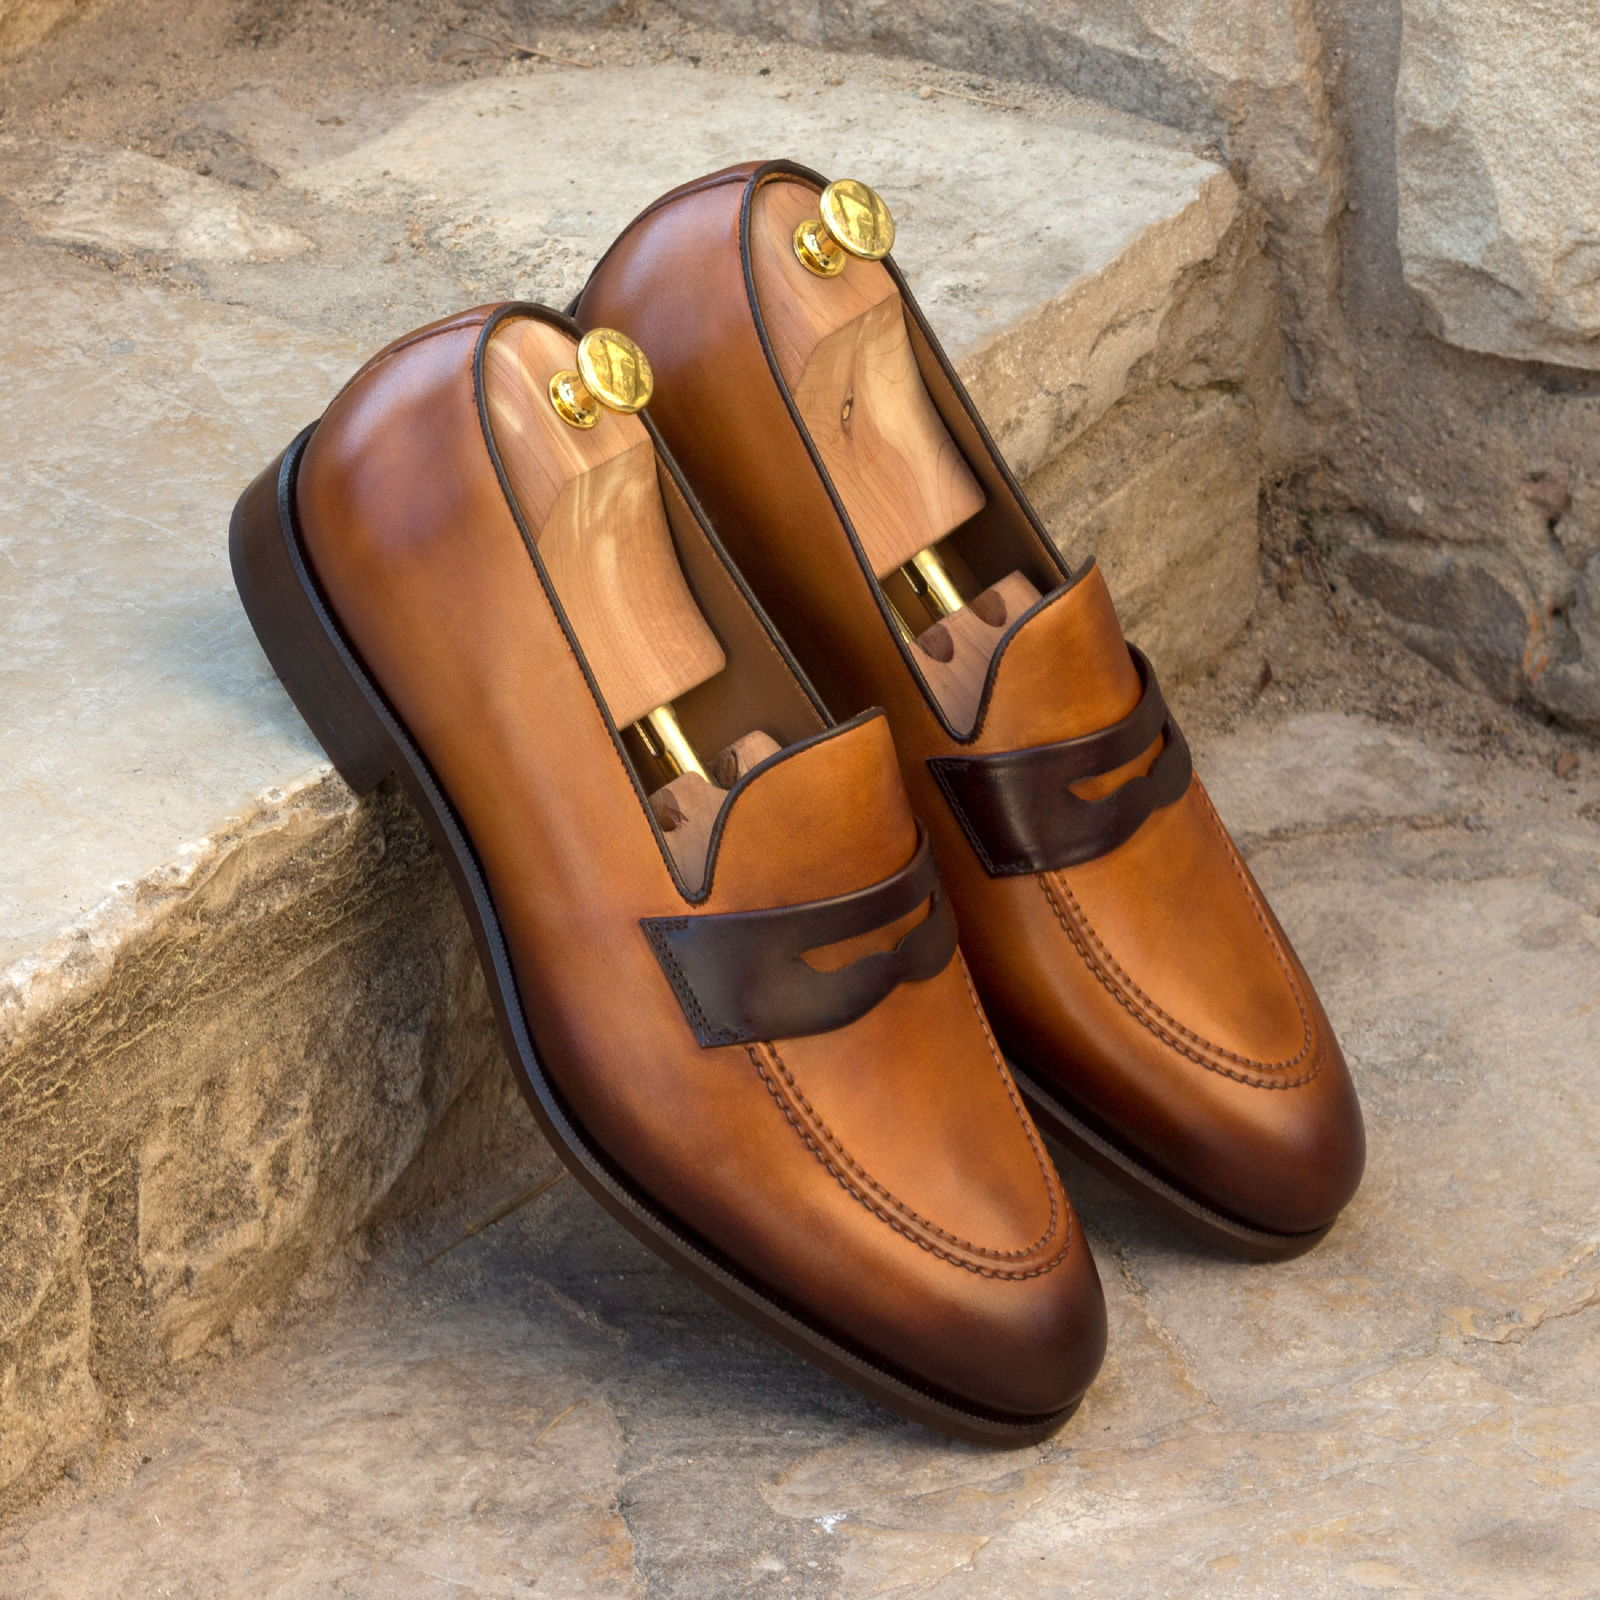 Loafer dark brown painted calf + cognac painted calf : 240€